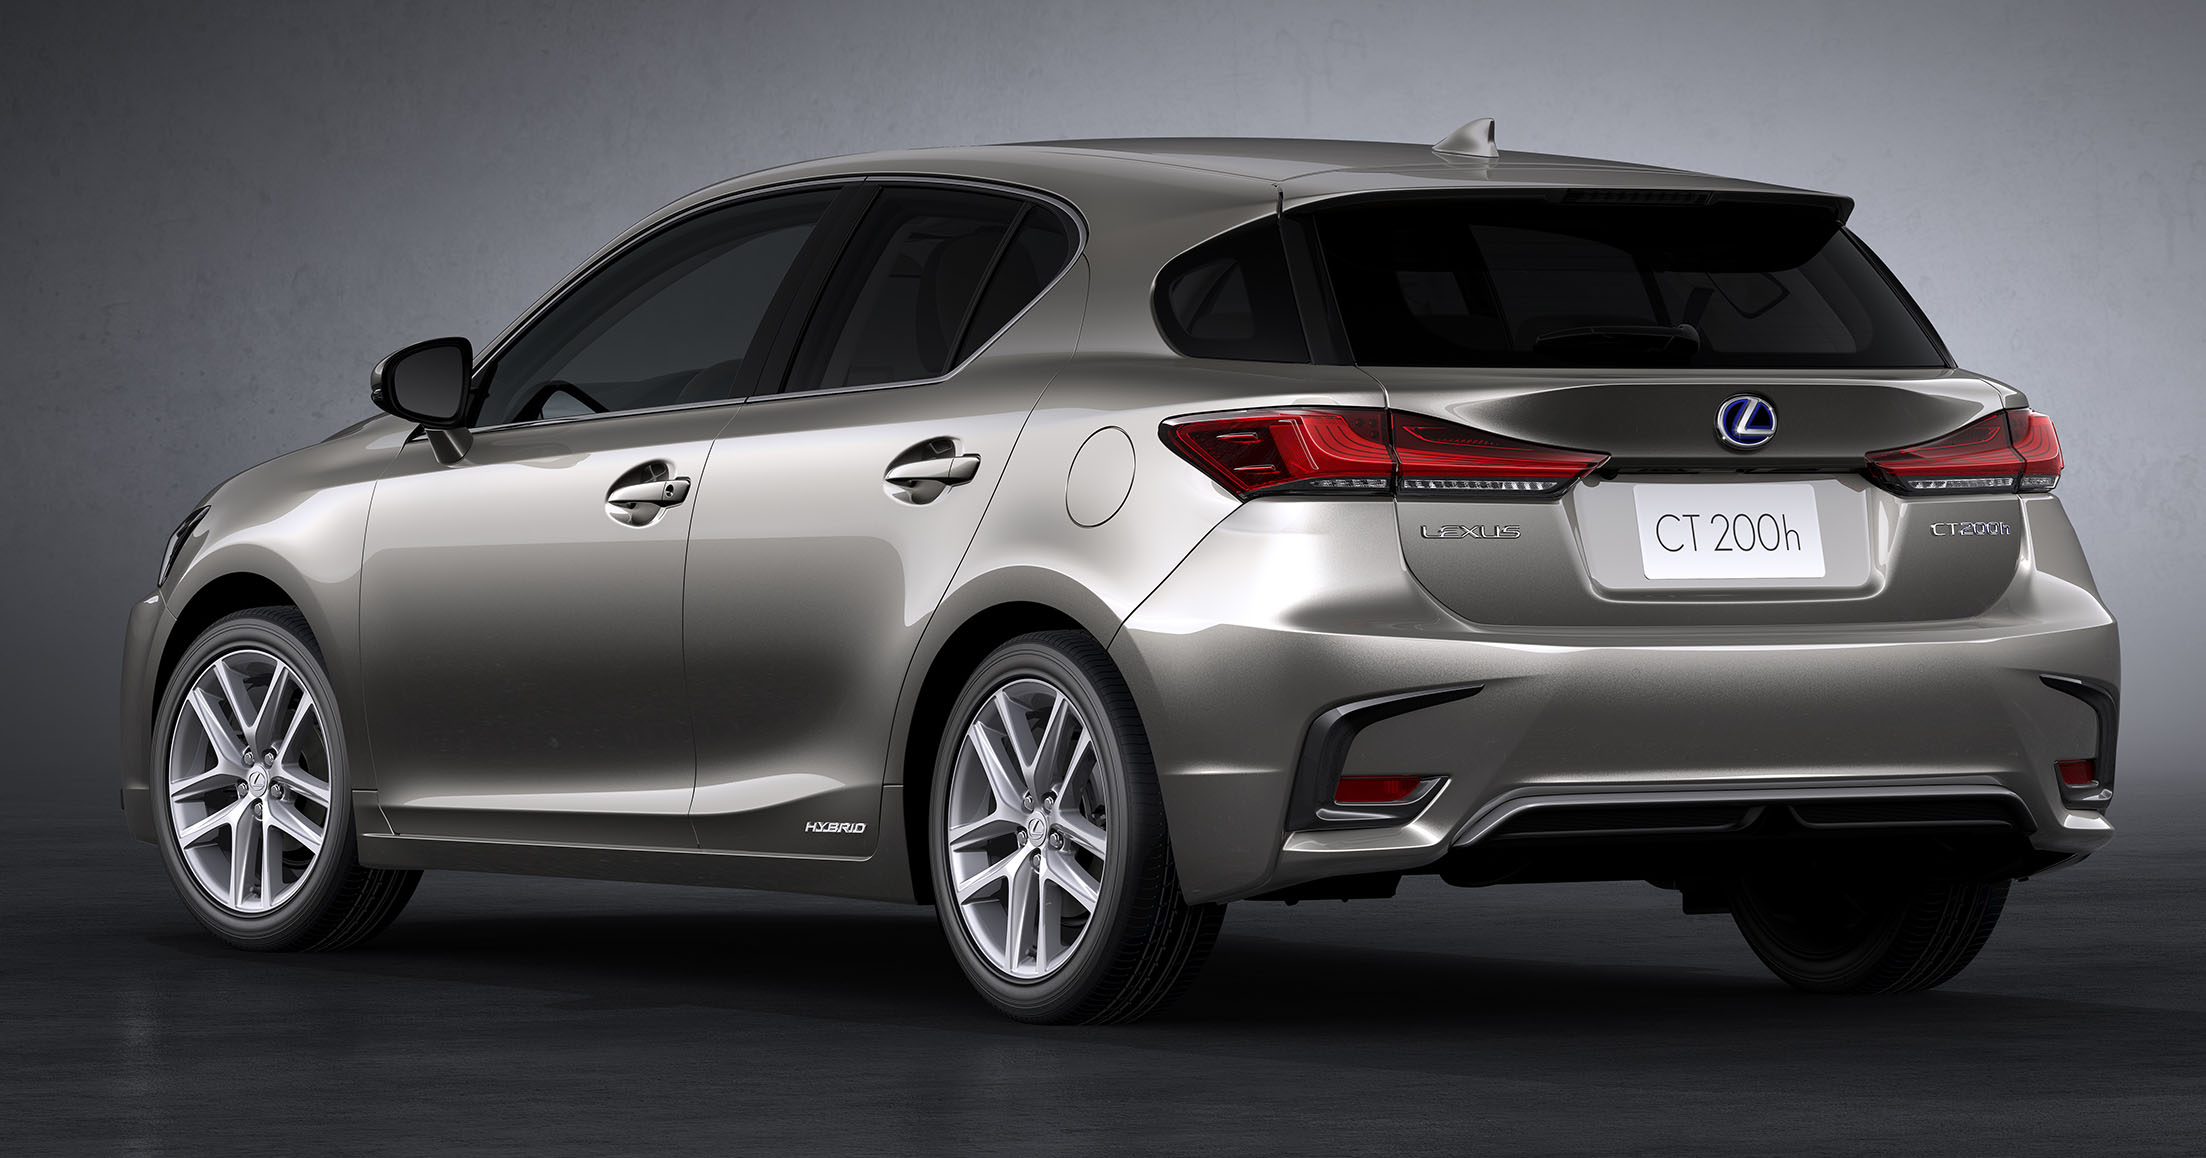 2018 lexus ct 200h revealed with new styling tech paul. Black Bedroom Furniture Sets. Home Design Ideas